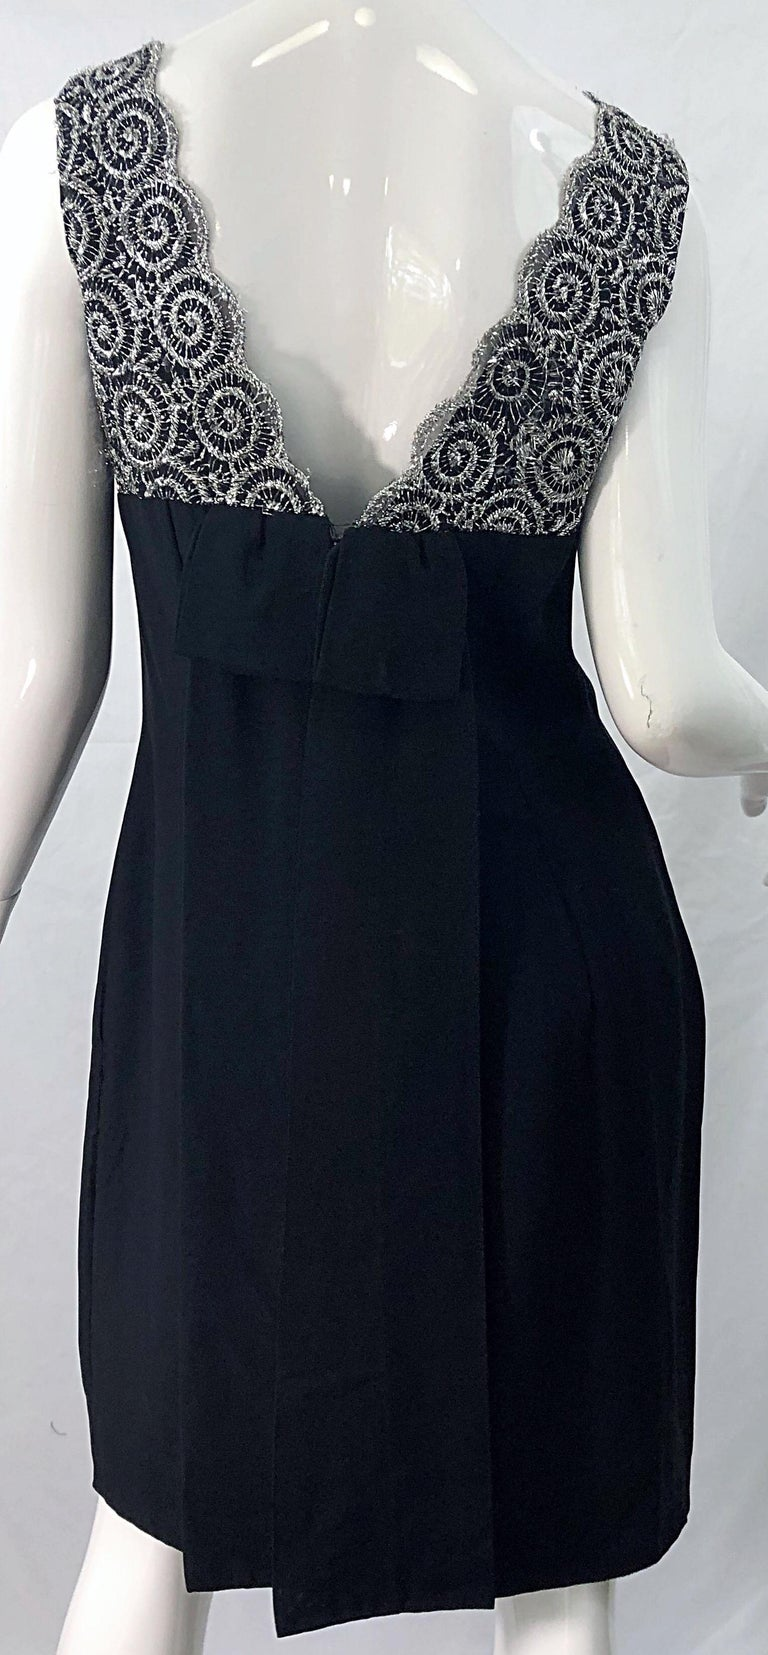 Chic 1960s Black and Silver Metallic Lace Rayon Crepe Vintage 60s Sheath Dress For Sale 8